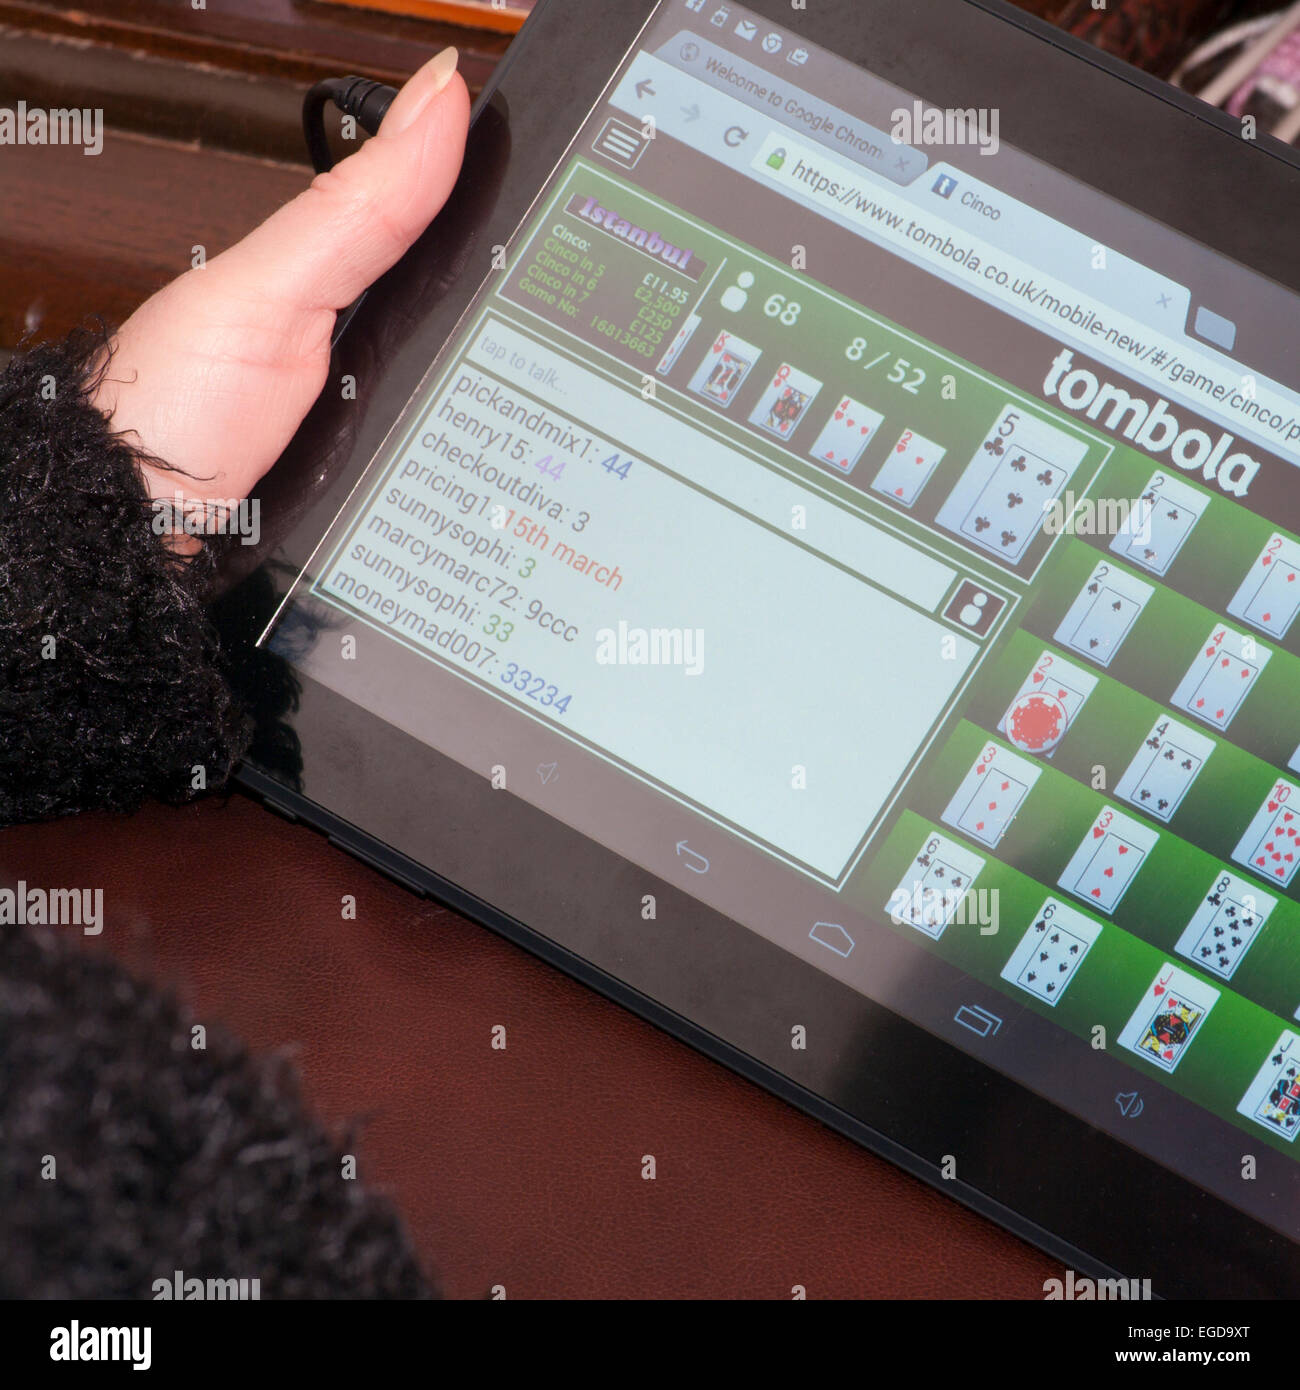 Woman Online Gambling Playing Cinco On The Tombola Bingo Website On A Tablet - Stock Image